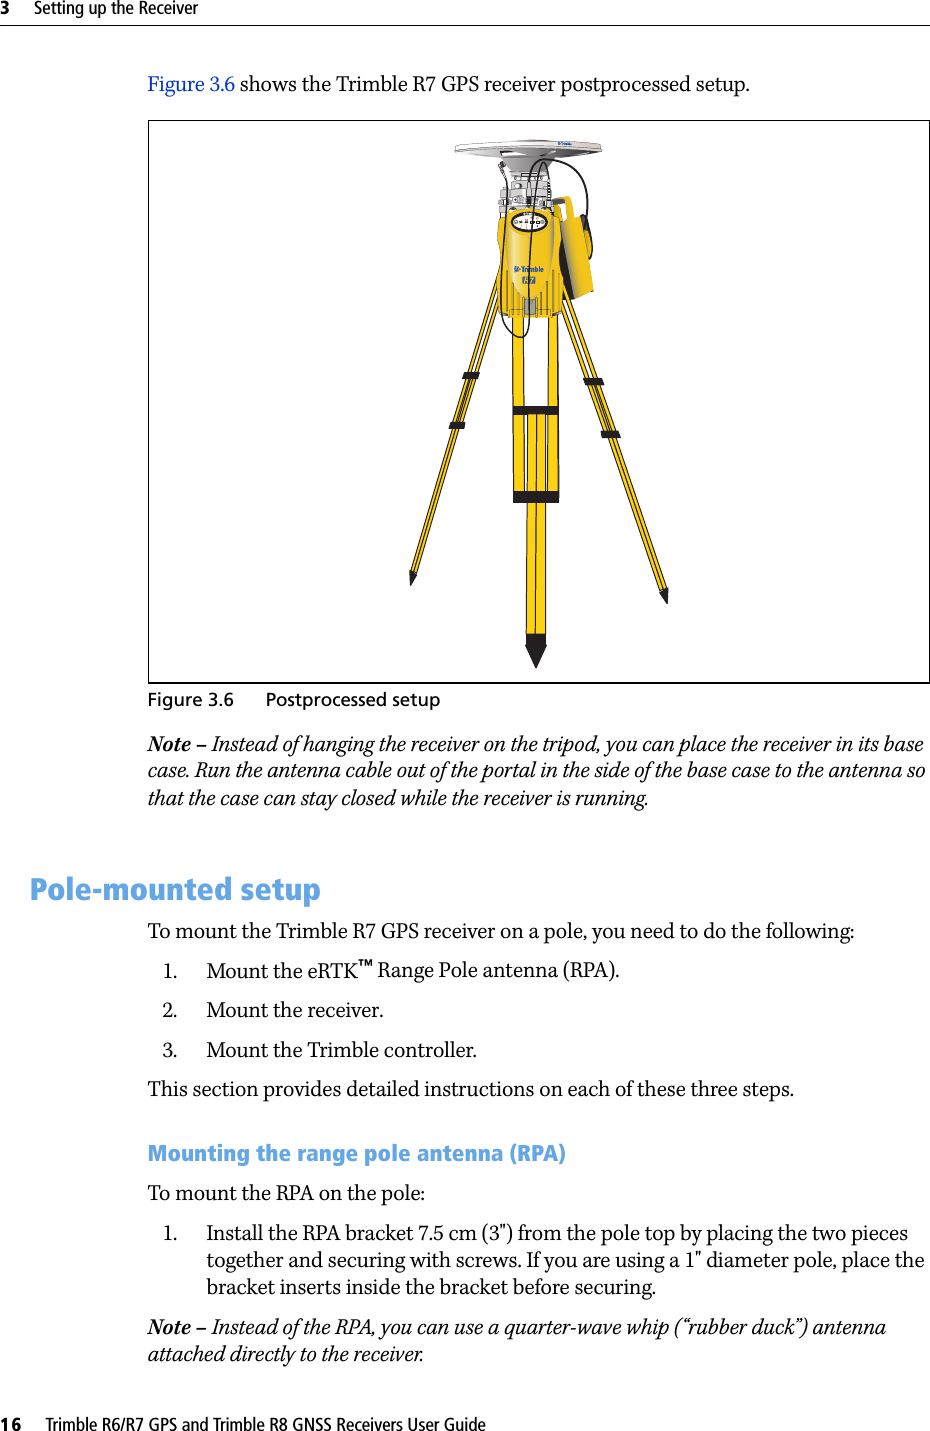 trimble r8 gnss manual pdf